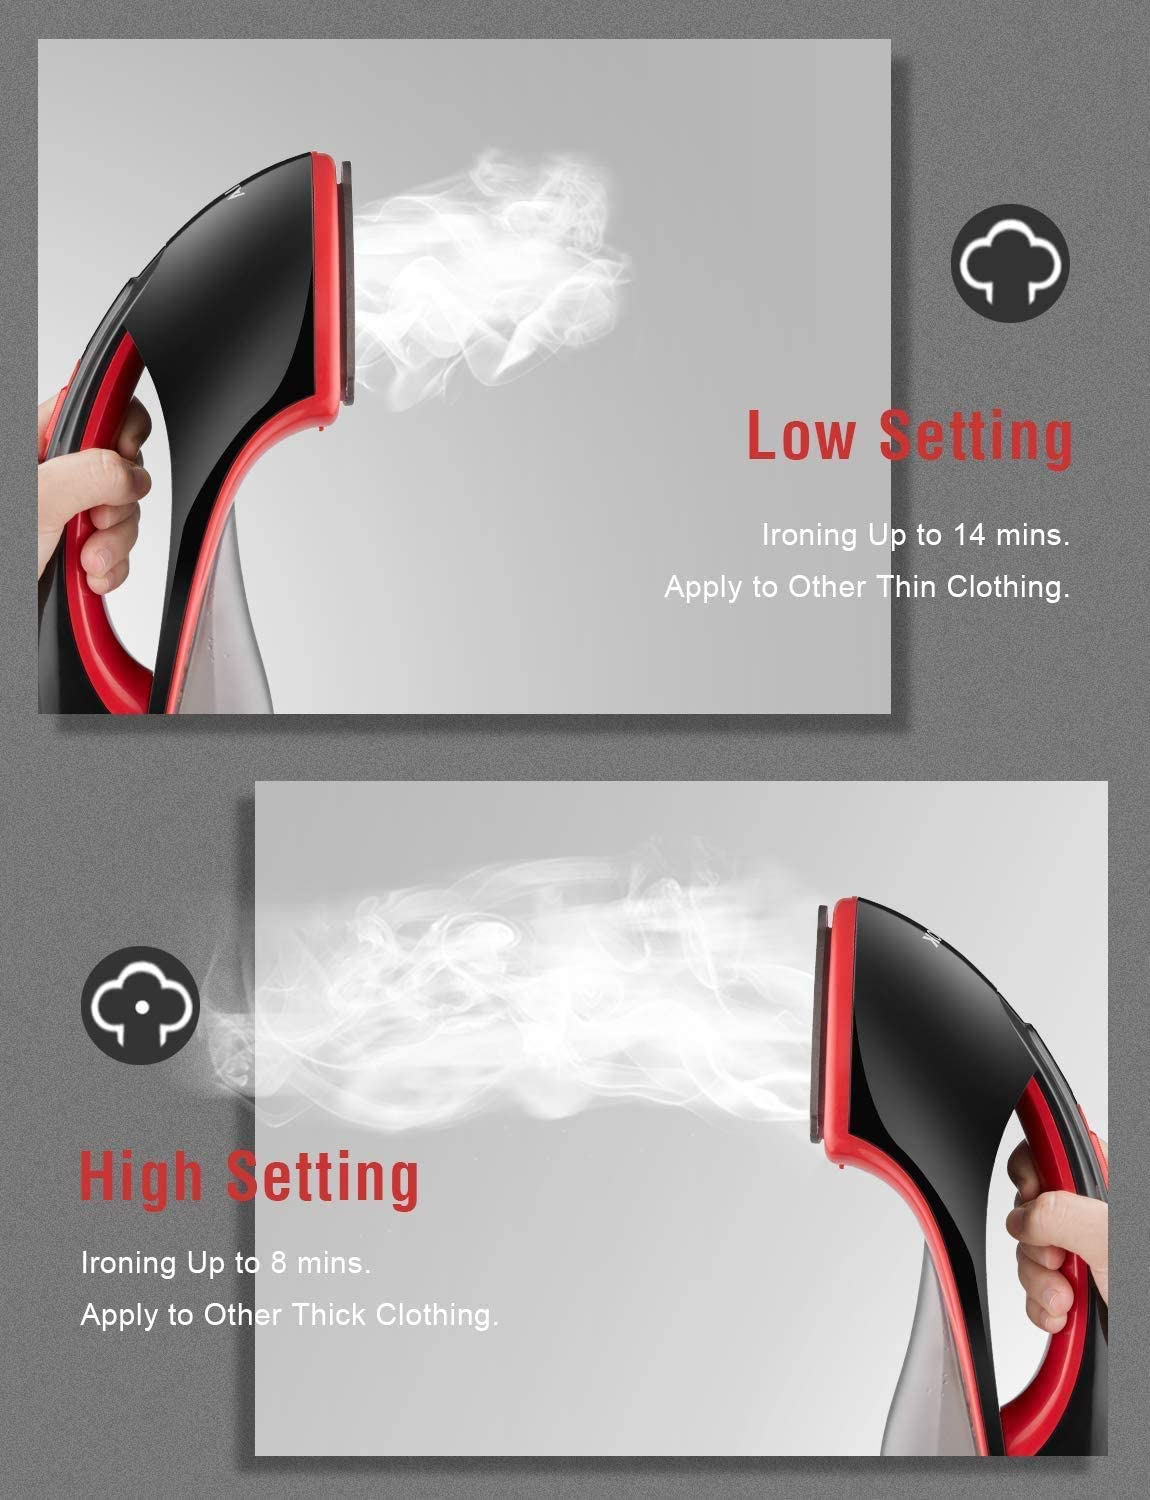 for Home and Travel Dual Steam Settings Lightweight and Compact 1500W 15S Fast Heat-up Handheld Iron Fabric Wrinkles Remover AICOK Clothes Steamer Vertical and Horizontal Garment Steamer